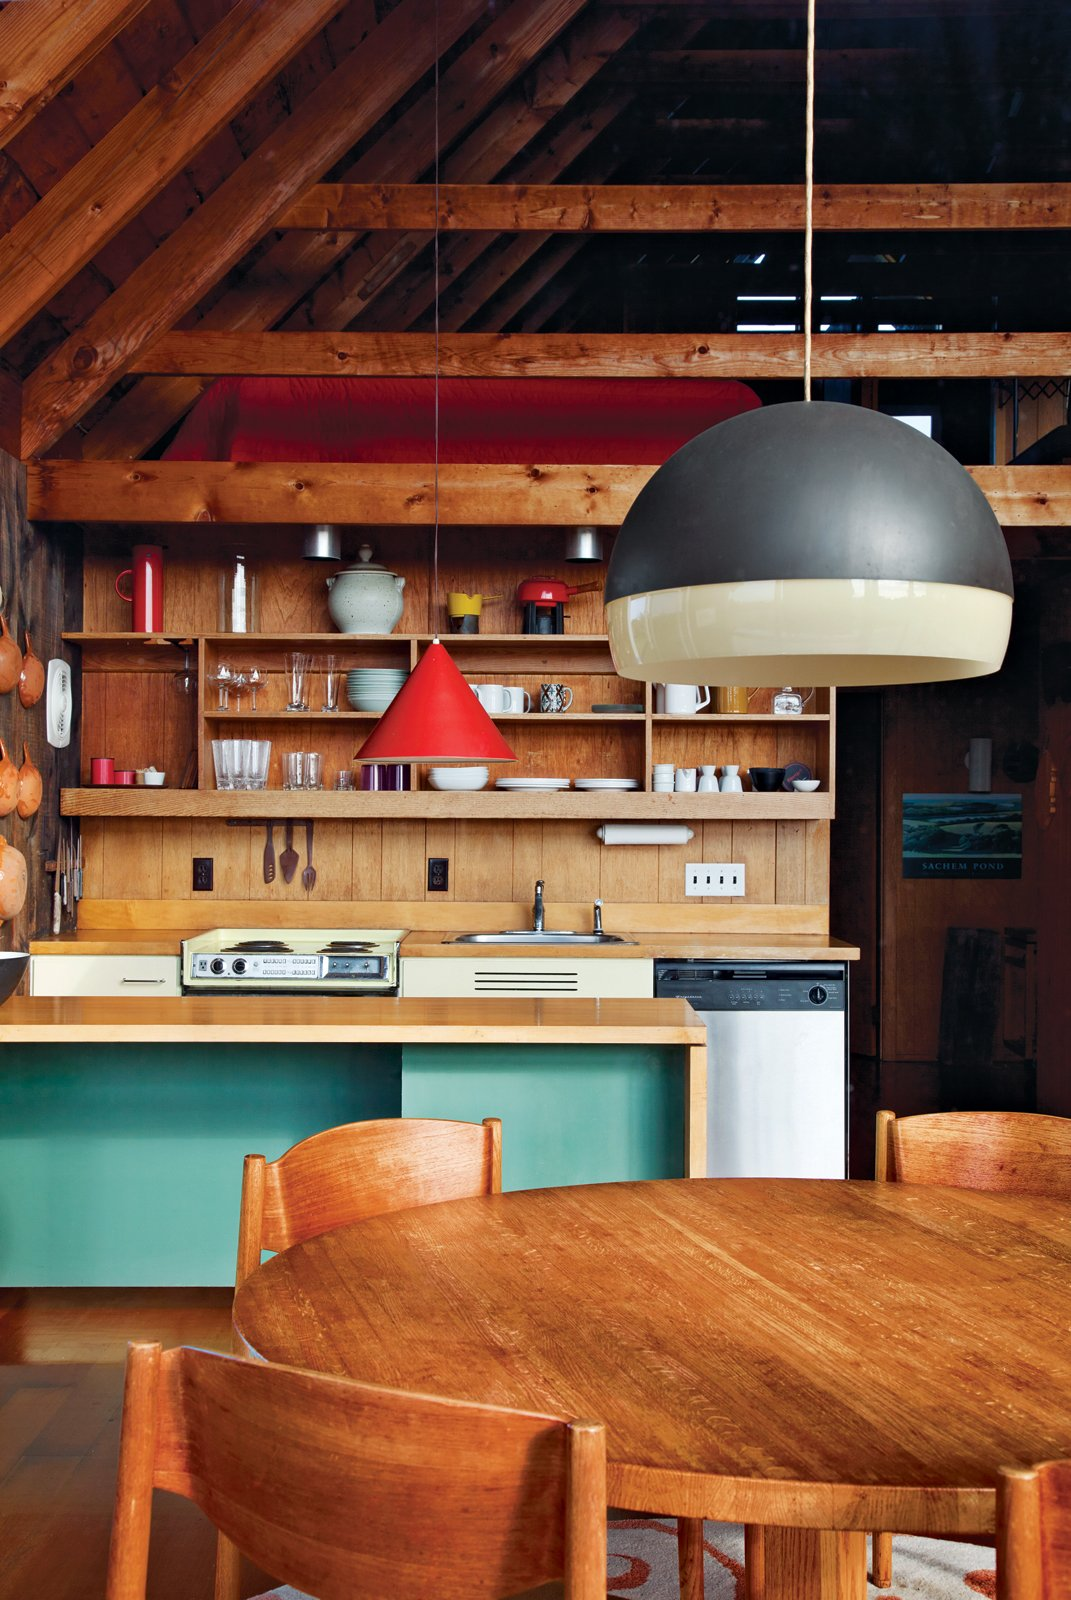 Jens Risom's family retreat in Rhode Island is a pitched prefab with a second-story loft. A no-frills kitchen features wooden shelves that mimic the home's beams. Photo by Floto + Warner. Tagged: Dining Room, Table, Pendant Lighting, Chair, Bar, and Medium Hardwood Floor.  Best Photos from Jens Risom's Block Island Family Retreat